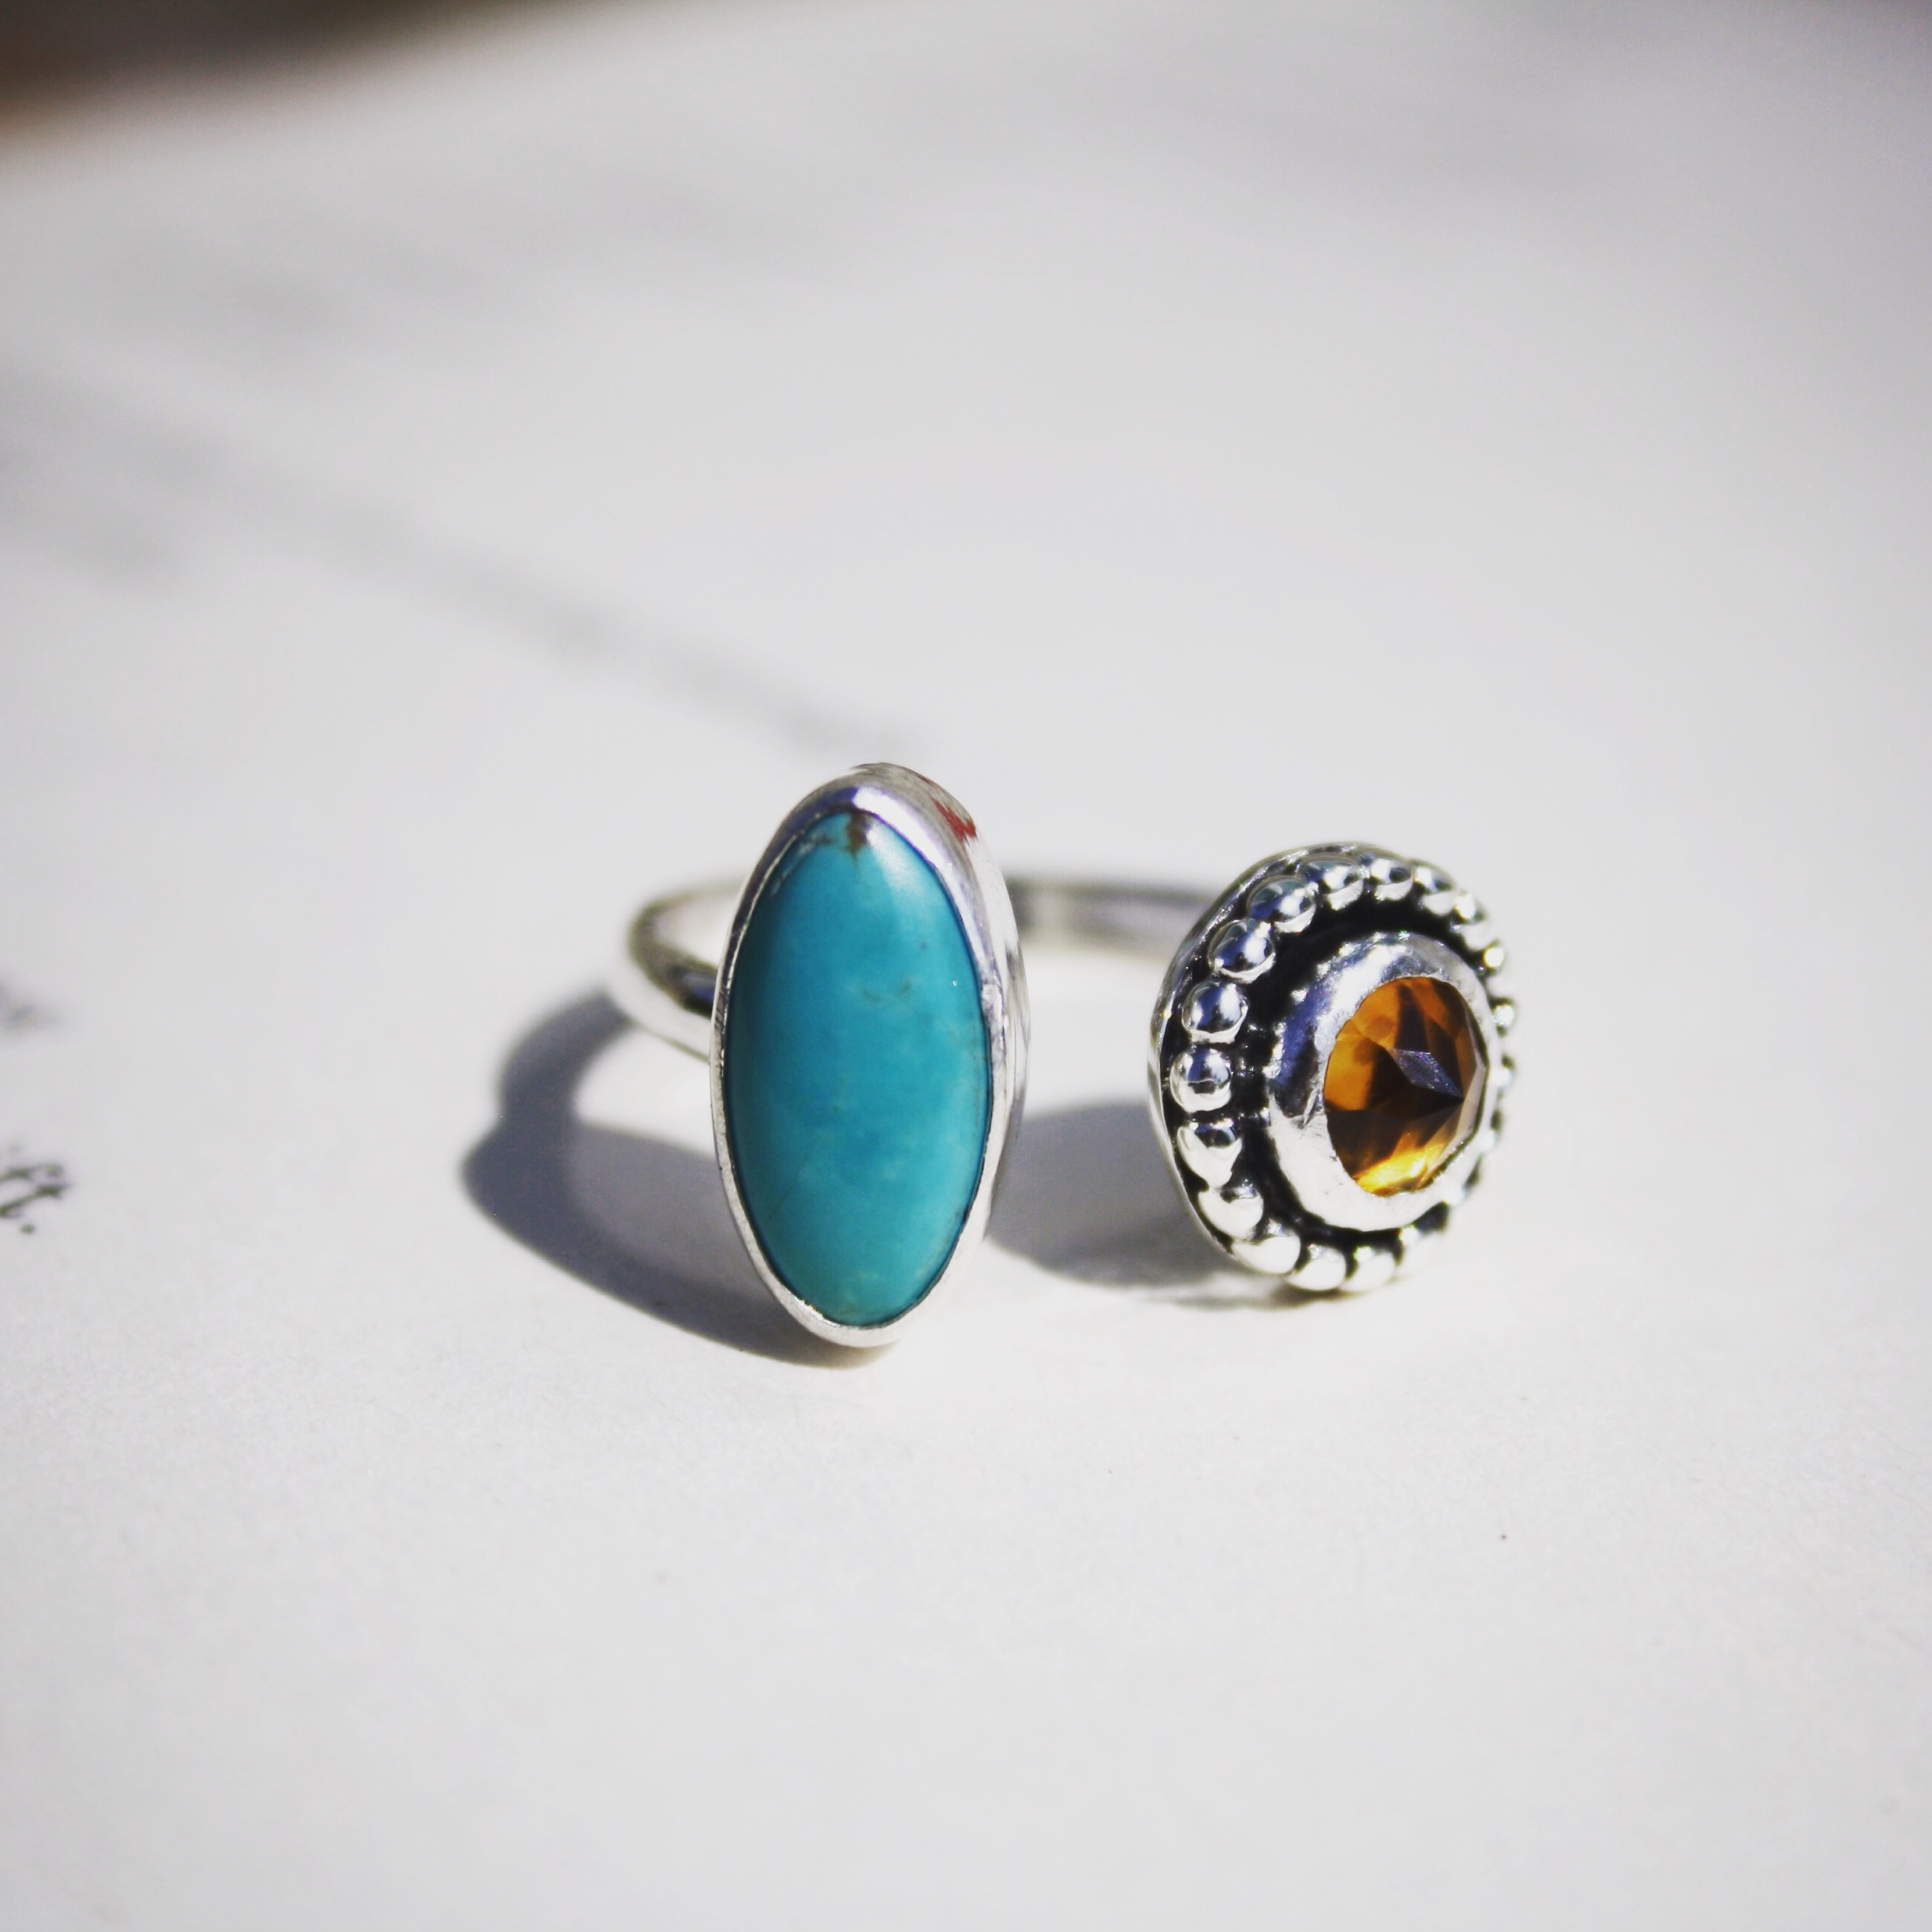 Turquoise and Citrine Ring